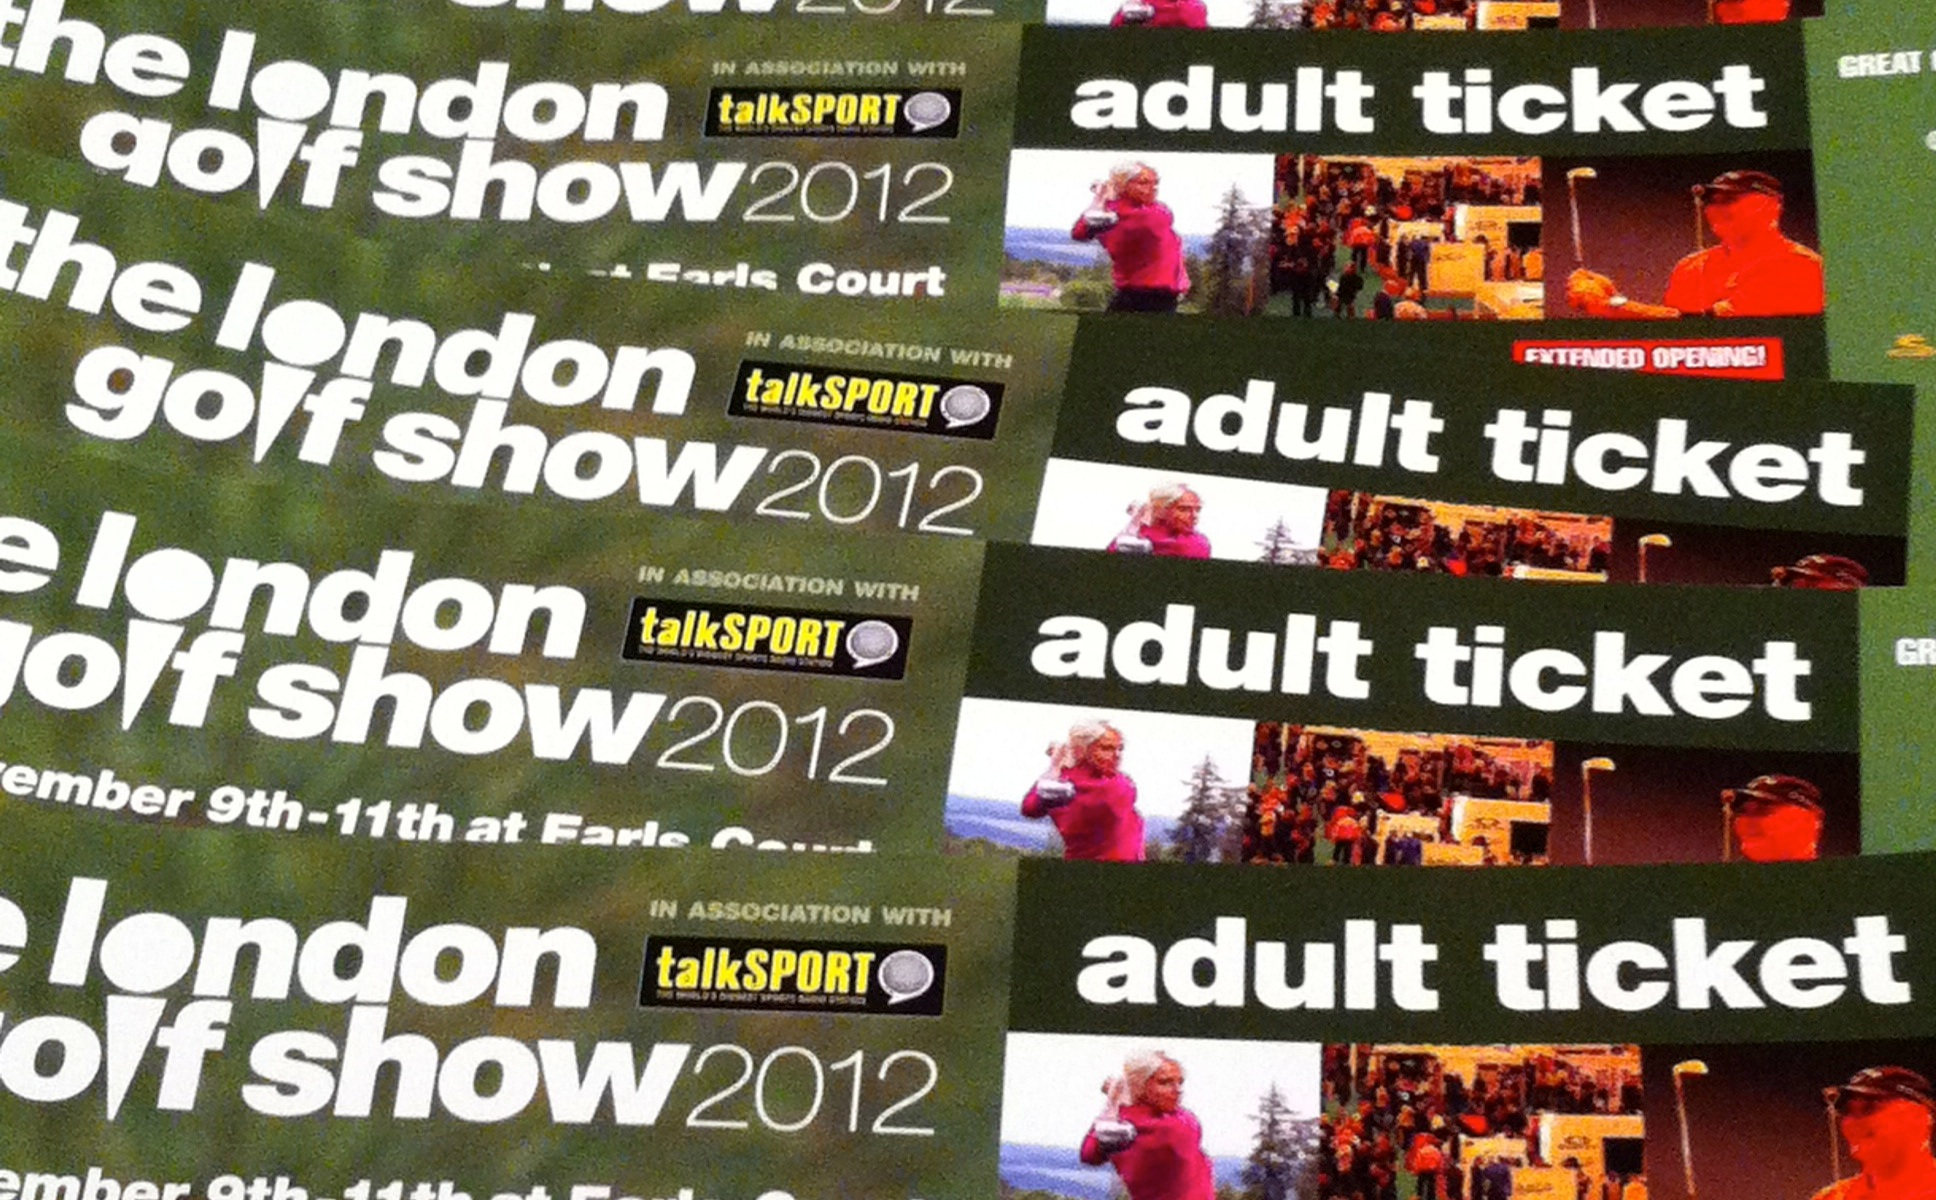 The London Golf Show